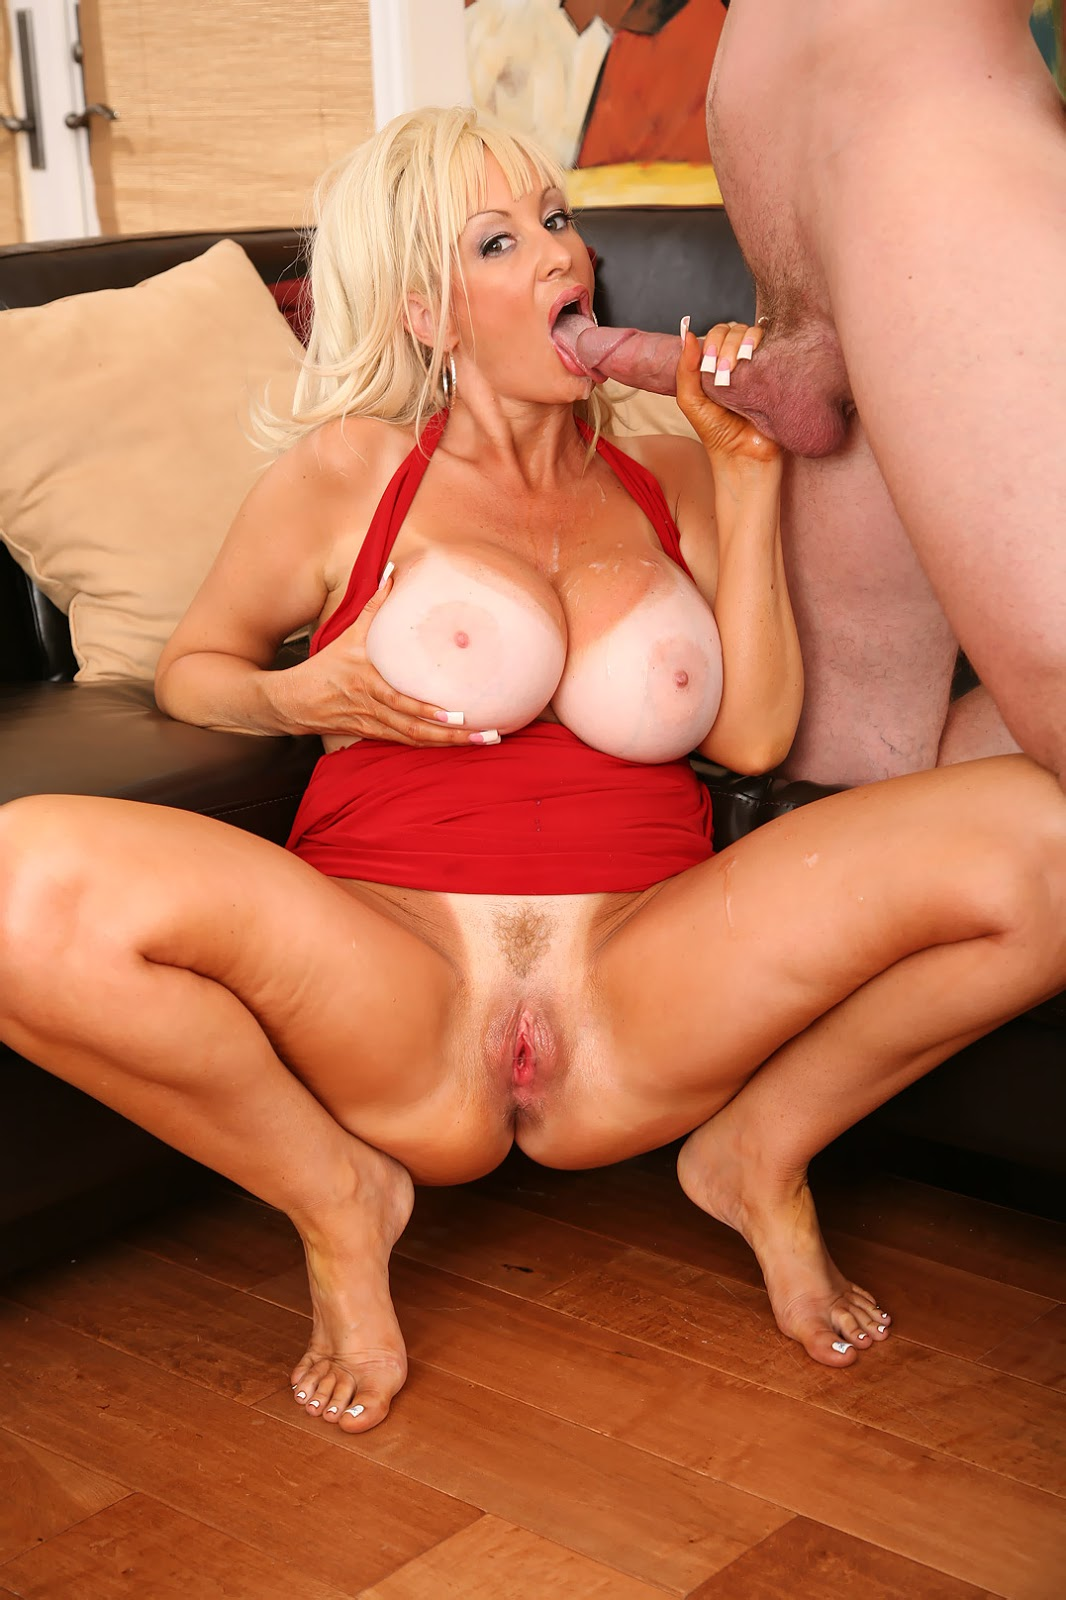 Brittany oneil anal